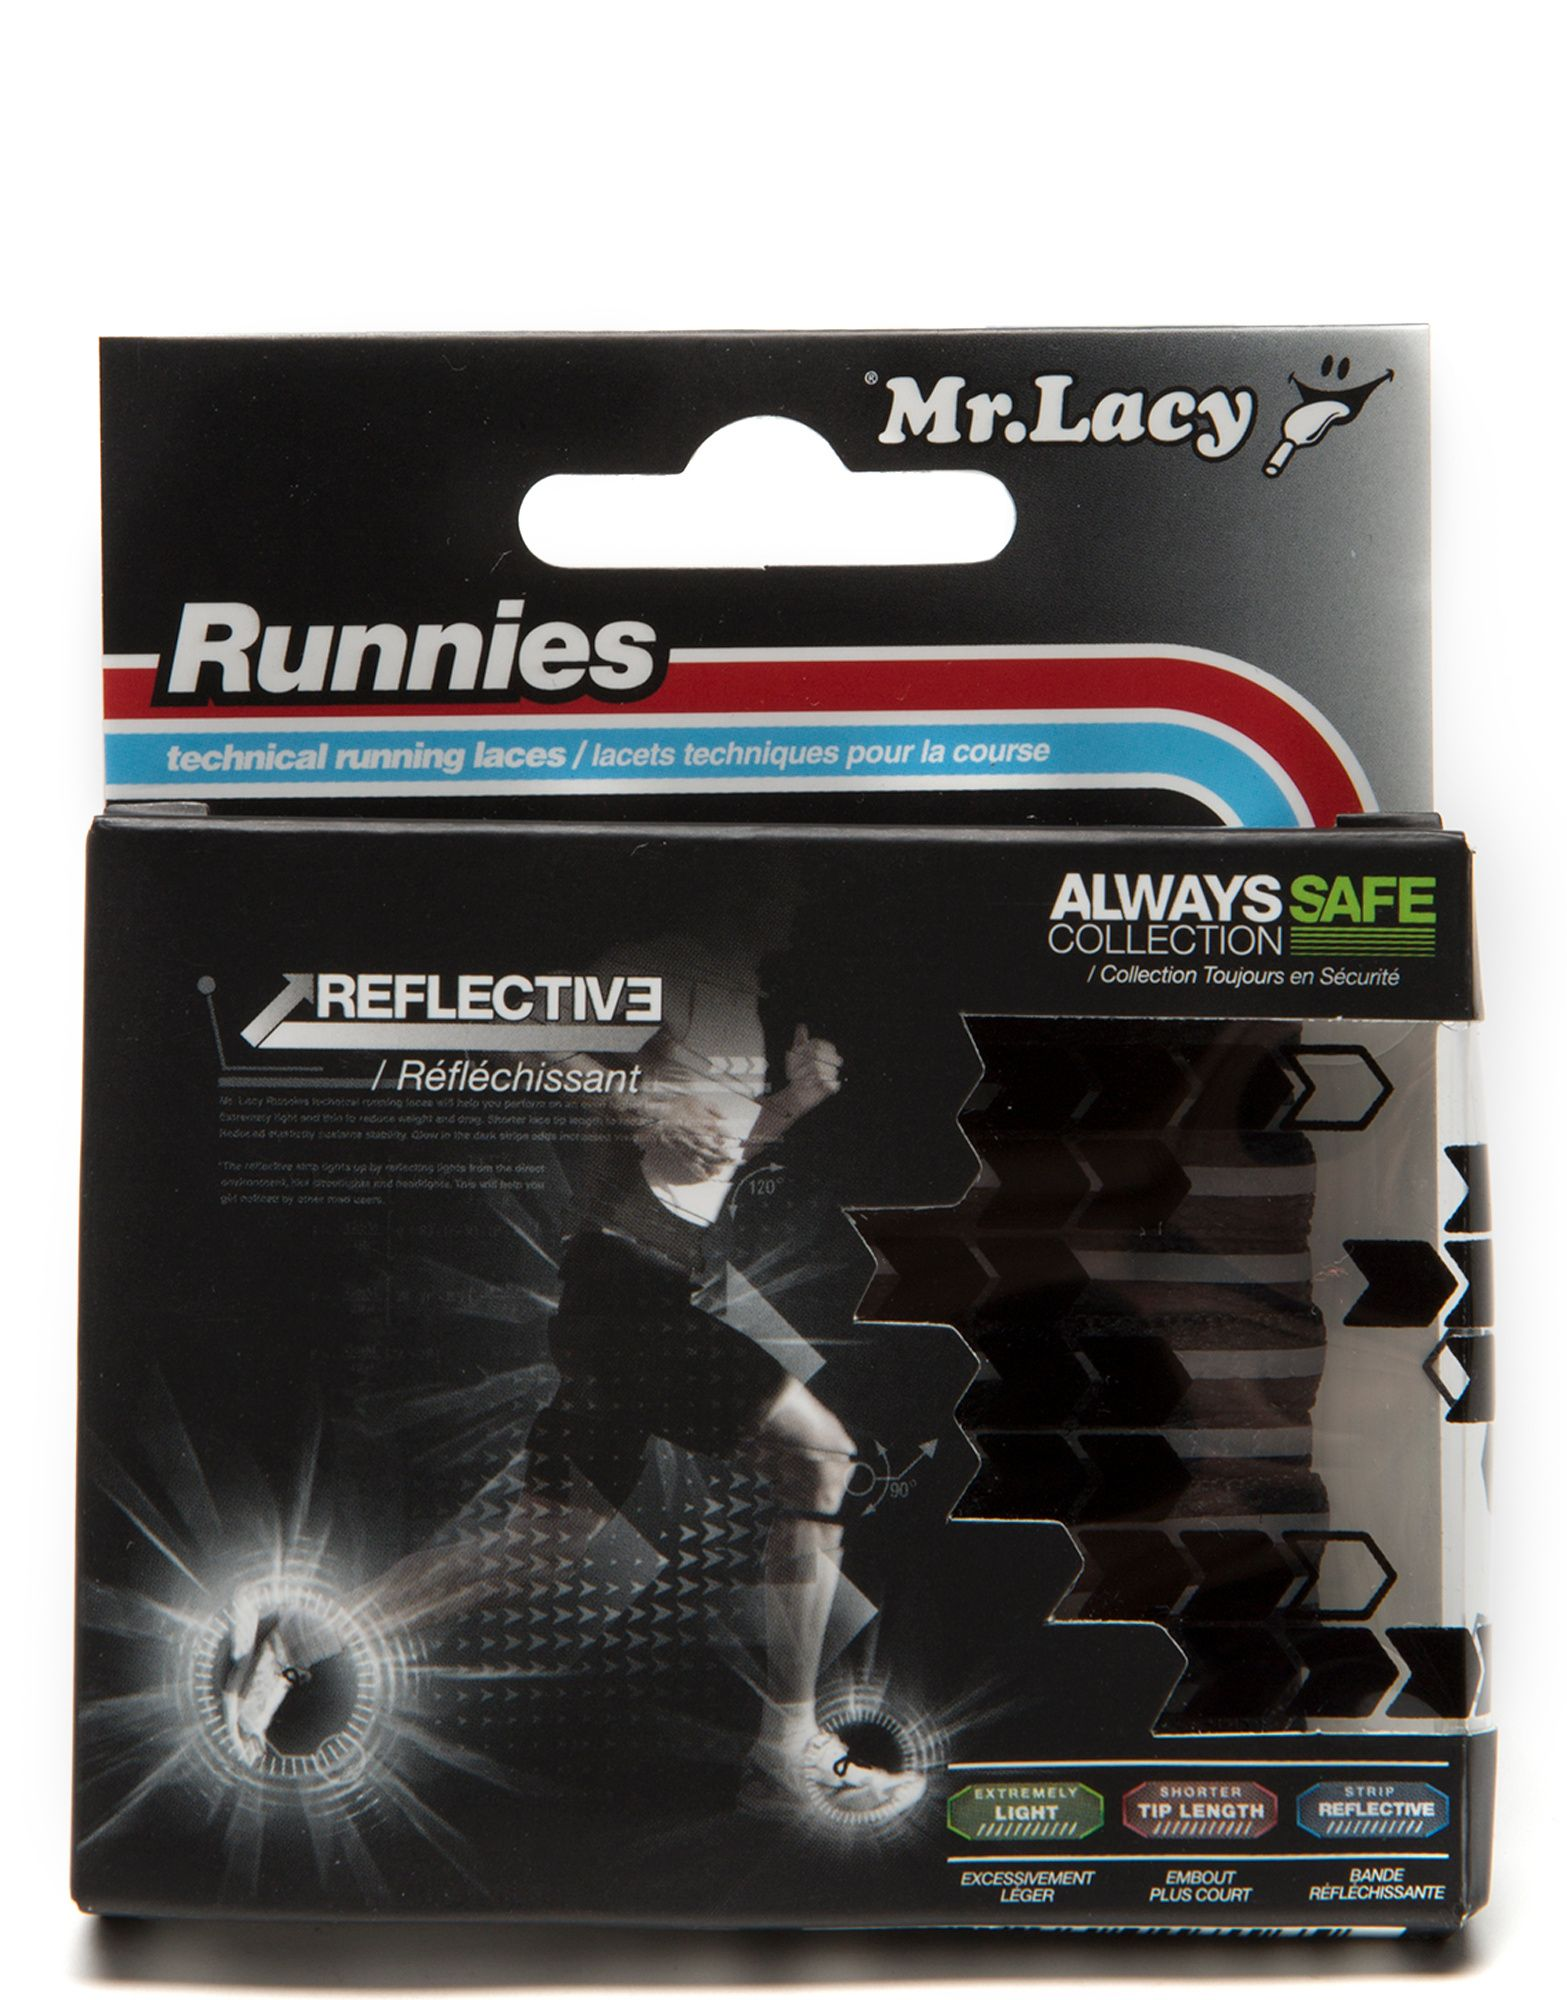 Mr Lacy Runnies Reflective Laces